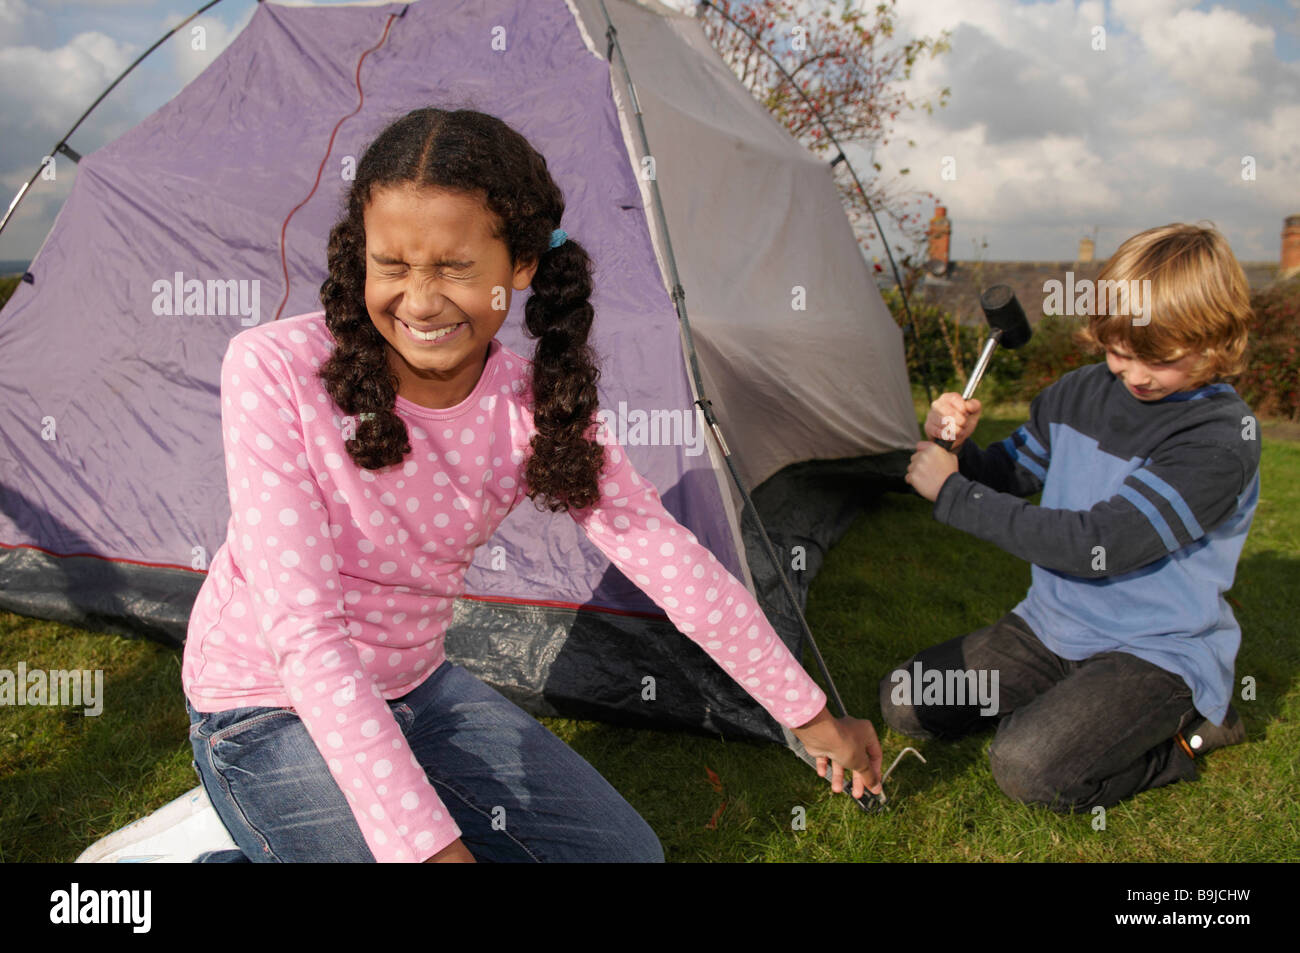 Boy and Girl erecting tent  sc 1 st  Alamy & Boy and Girl erecting tent Stock Photo Royalty Free Image ...